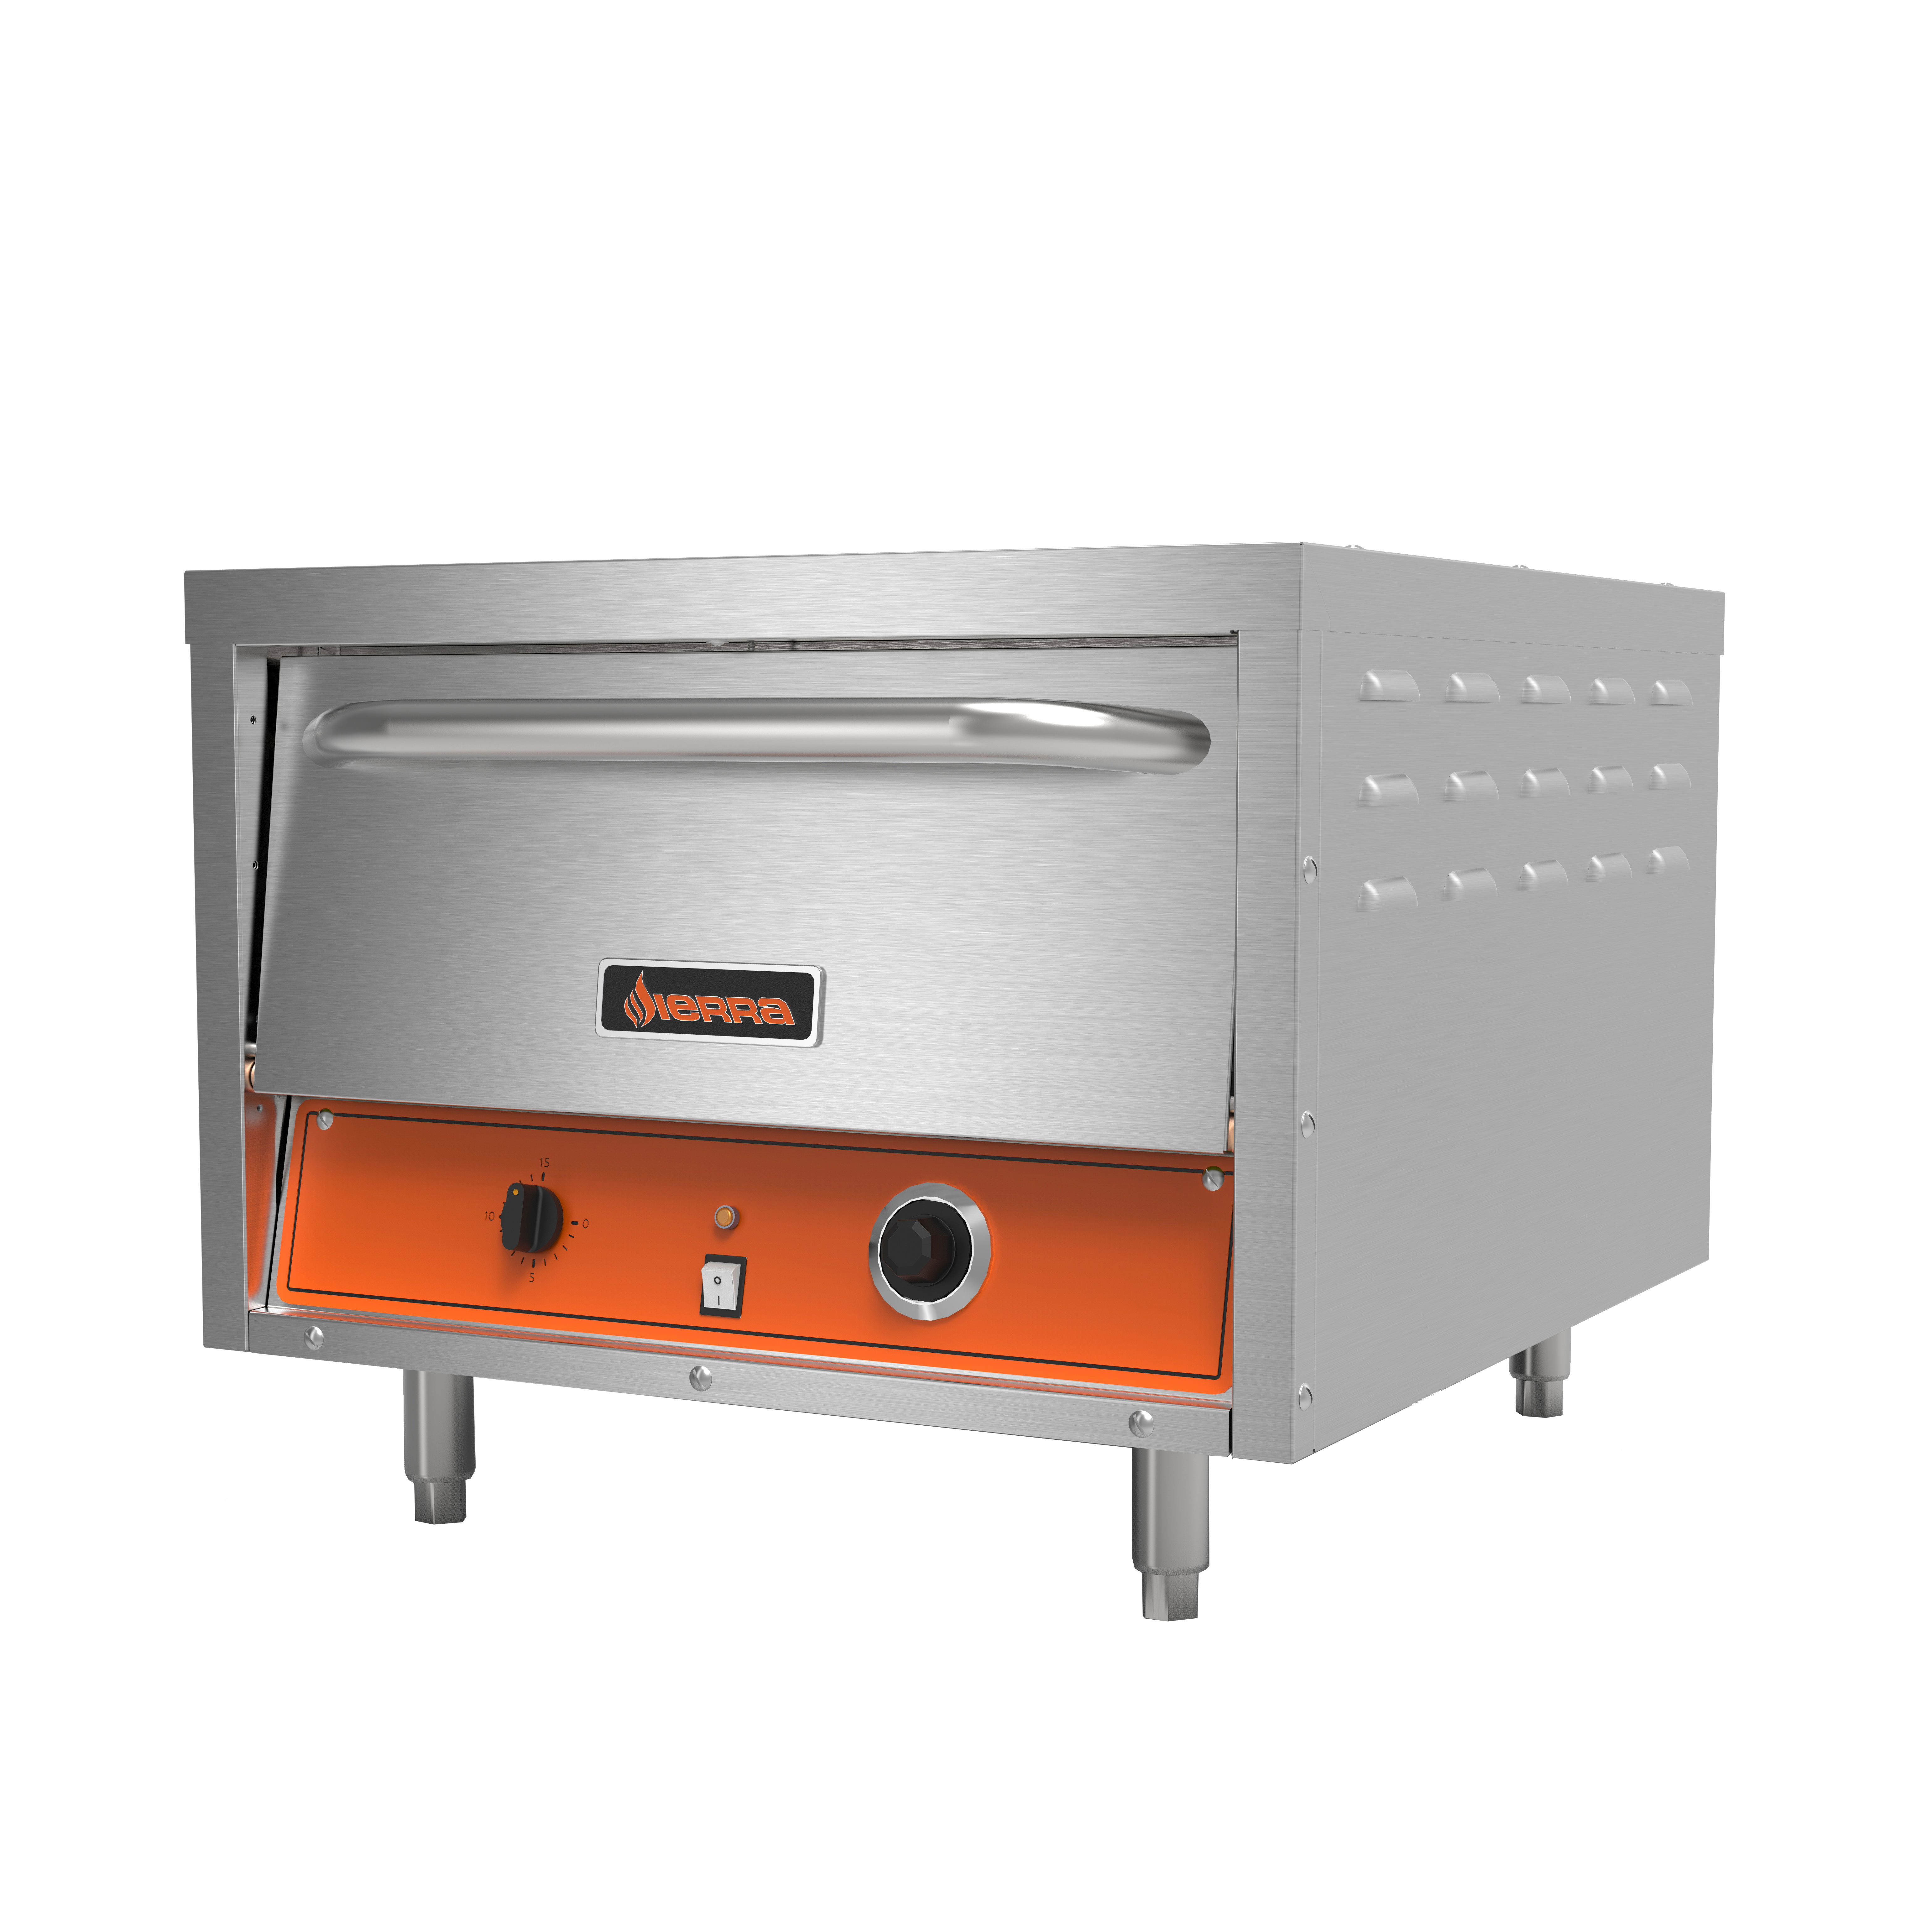 MVP SRPO-24E pizza bake oven, countertop, electric